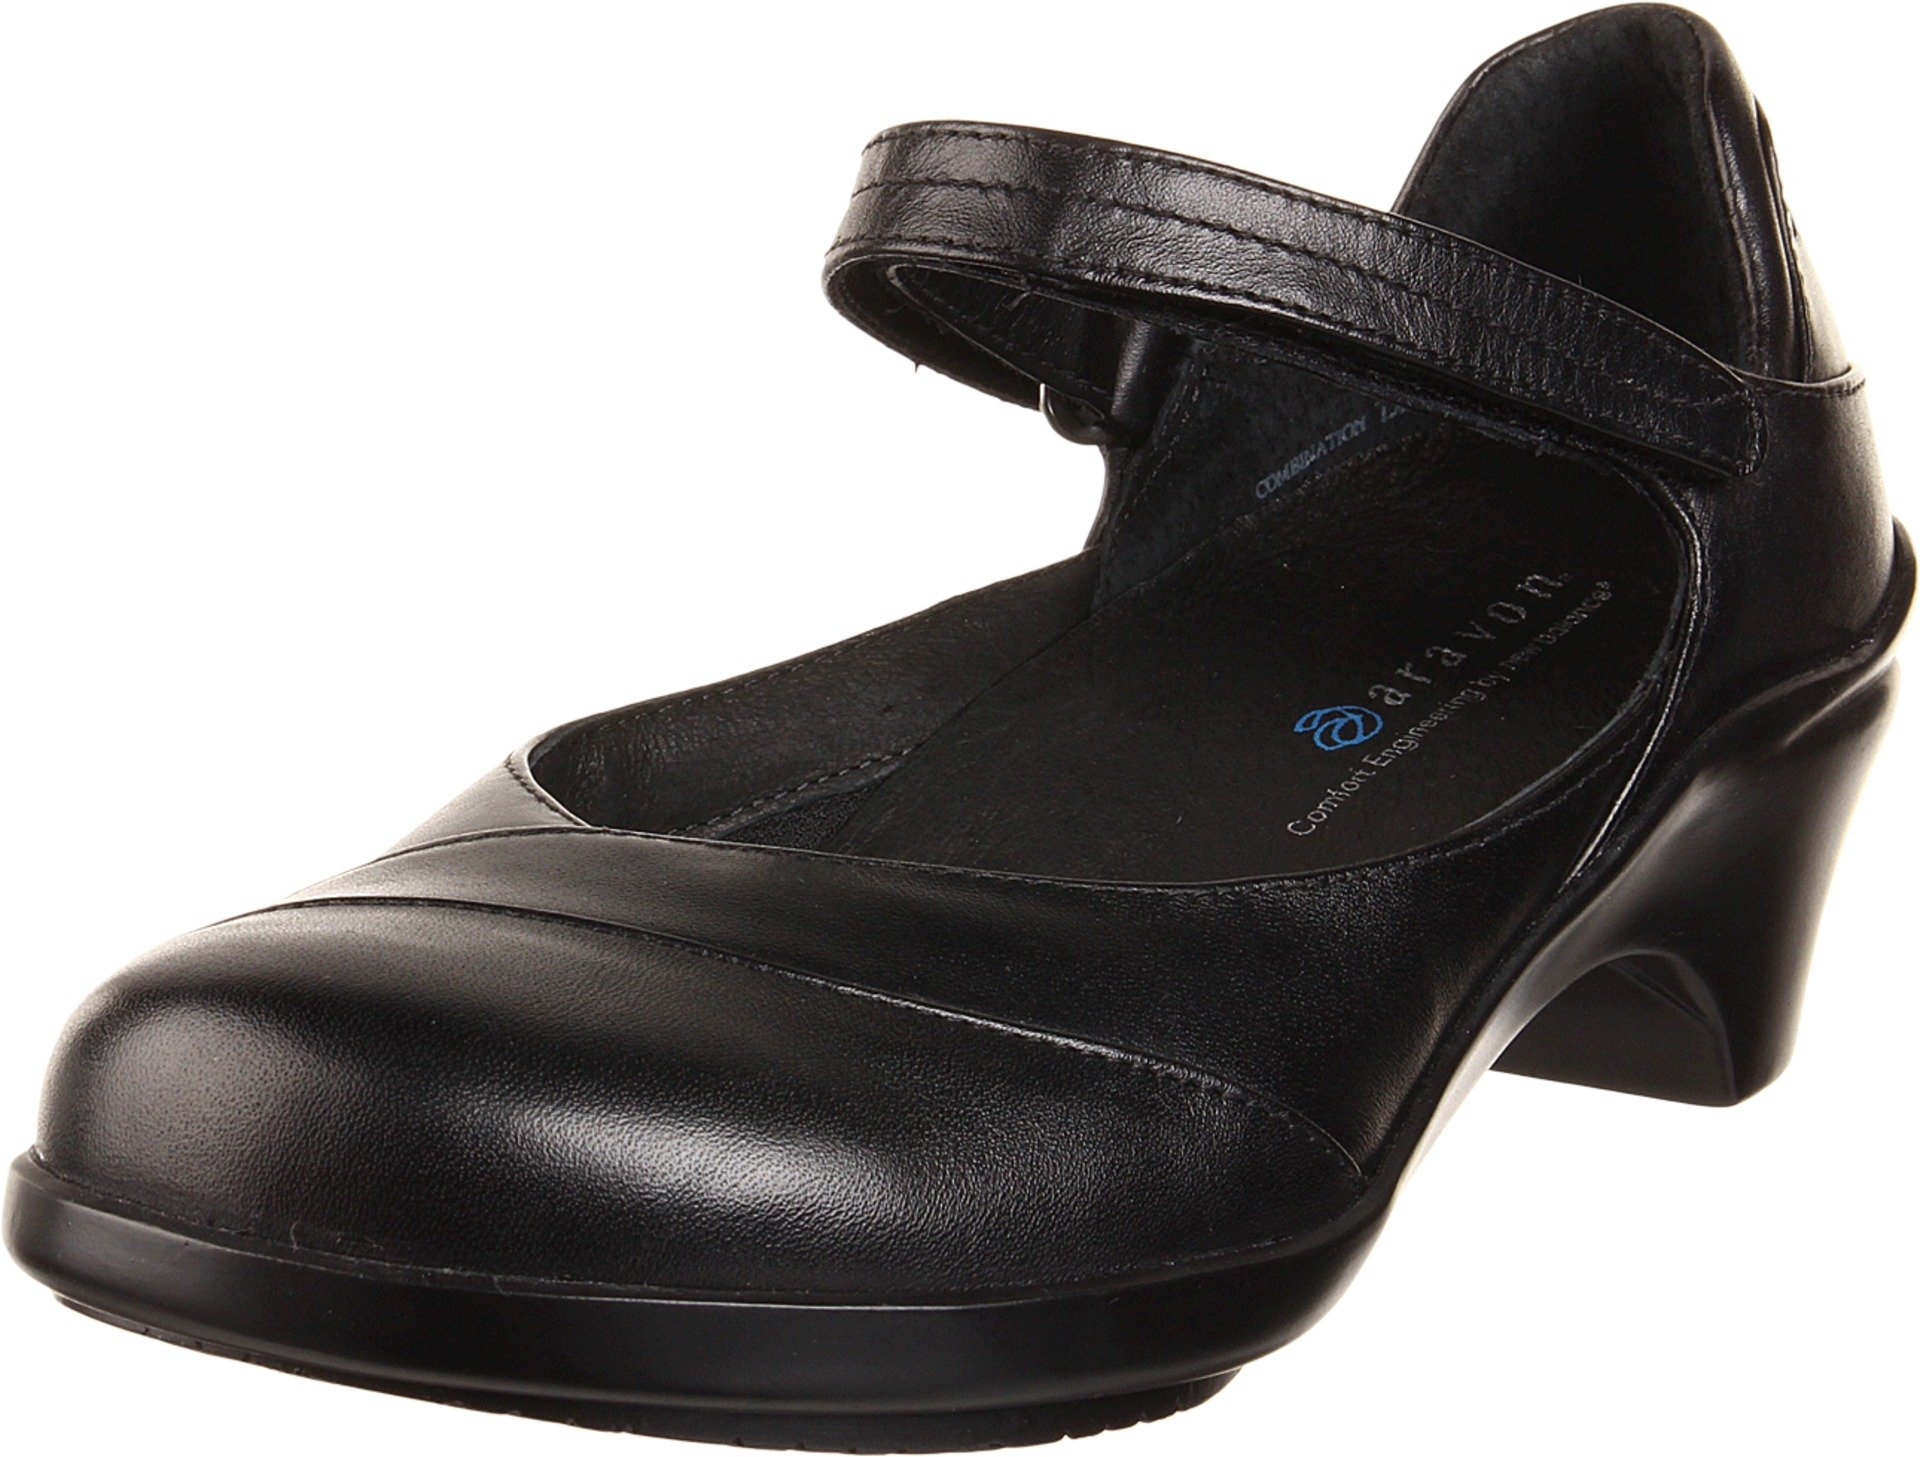 Aravon Womens Maya Pump,Black Leather,10.5 M (B) US by Aravon (Image #1)